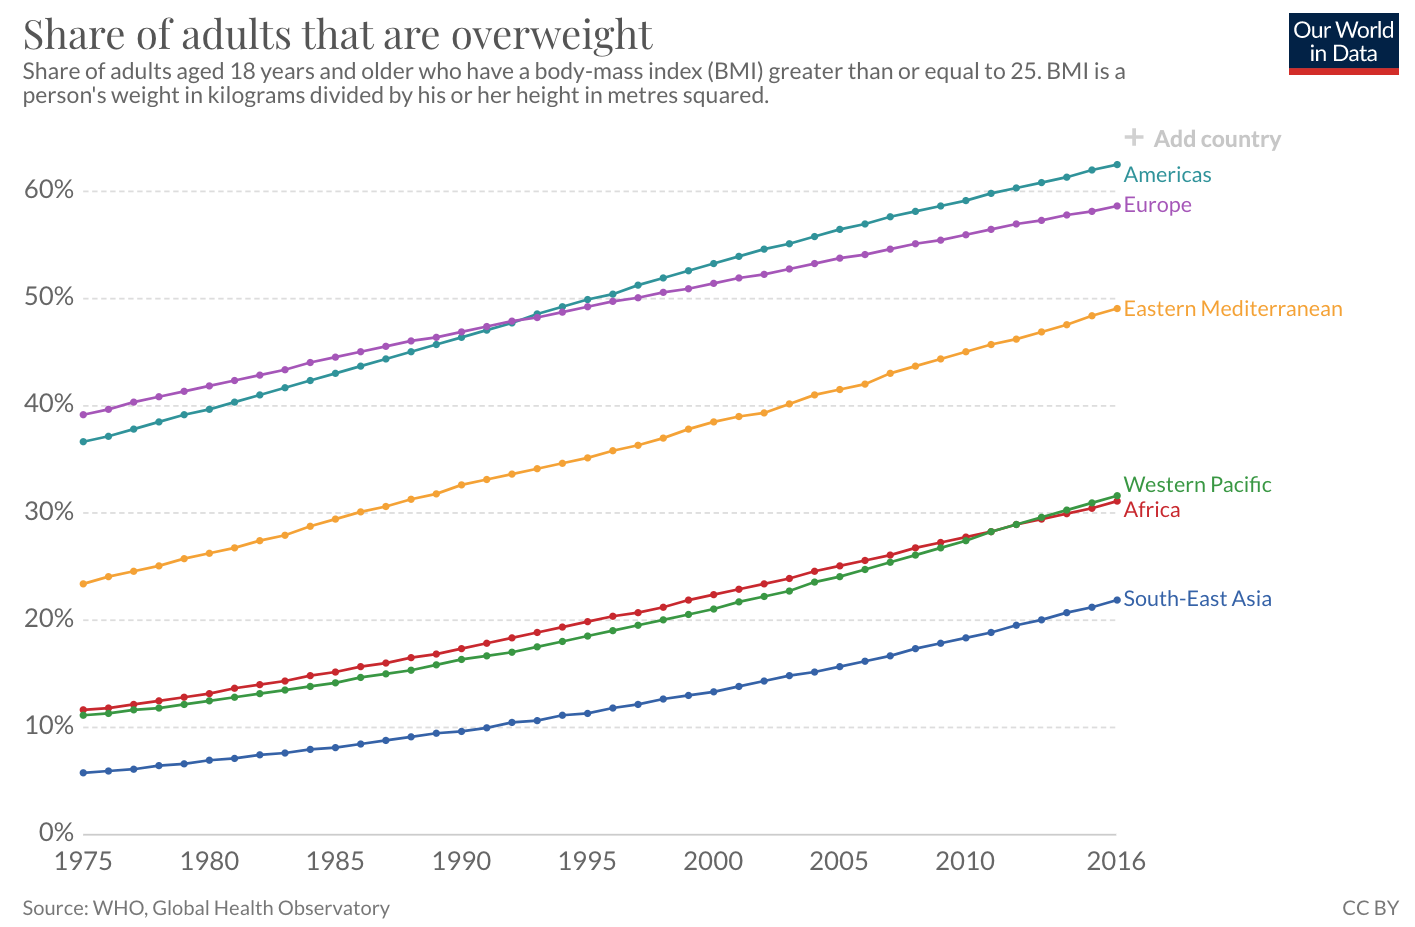 Share of adults around the world who are overweight